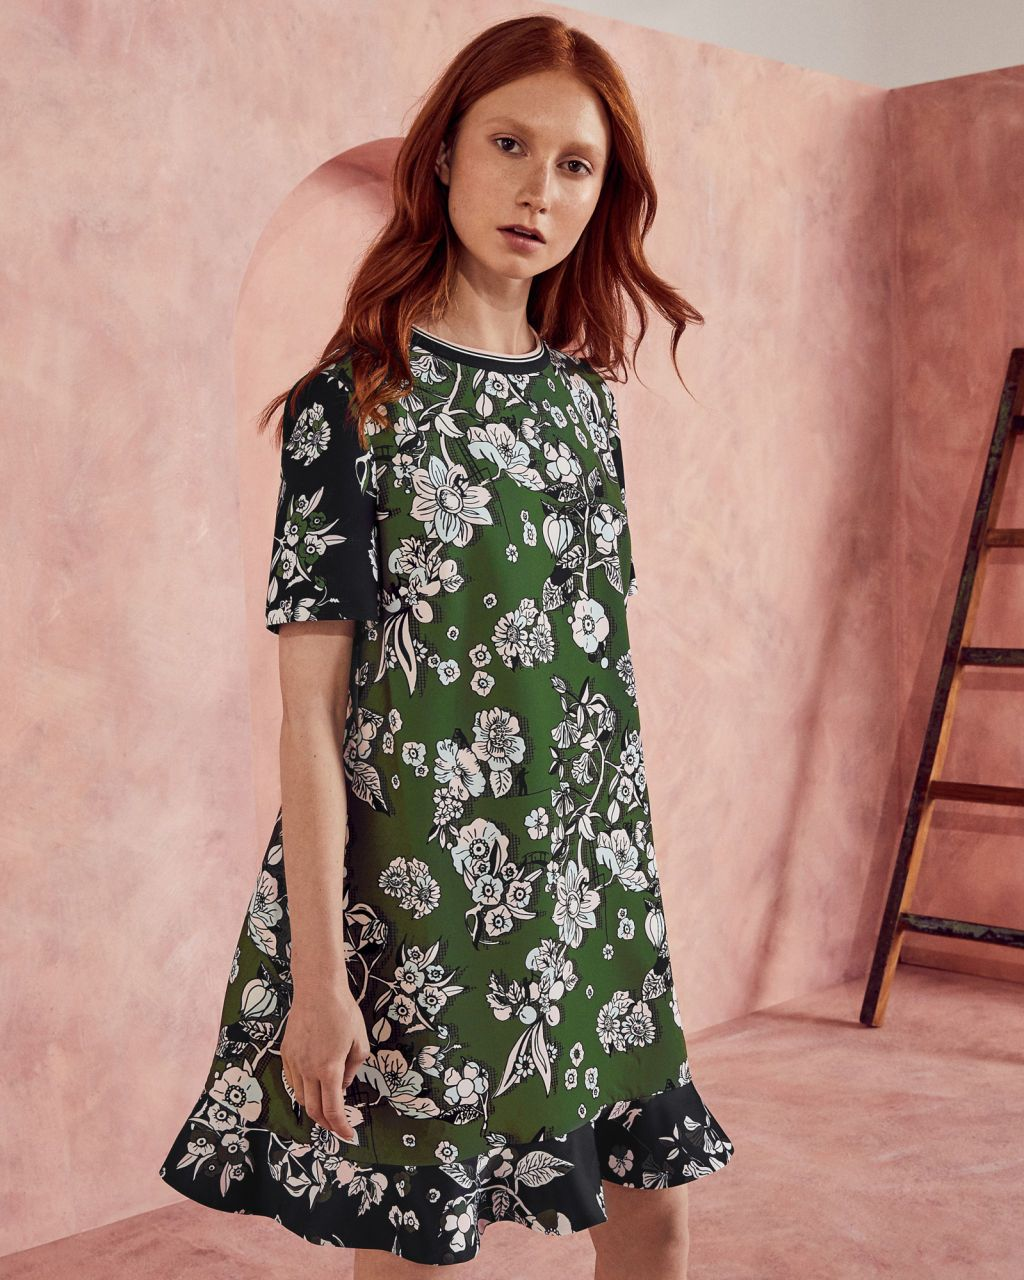 Green dress ideas  Ted Baker Floral print frill hem dress Green  Floral and Printing